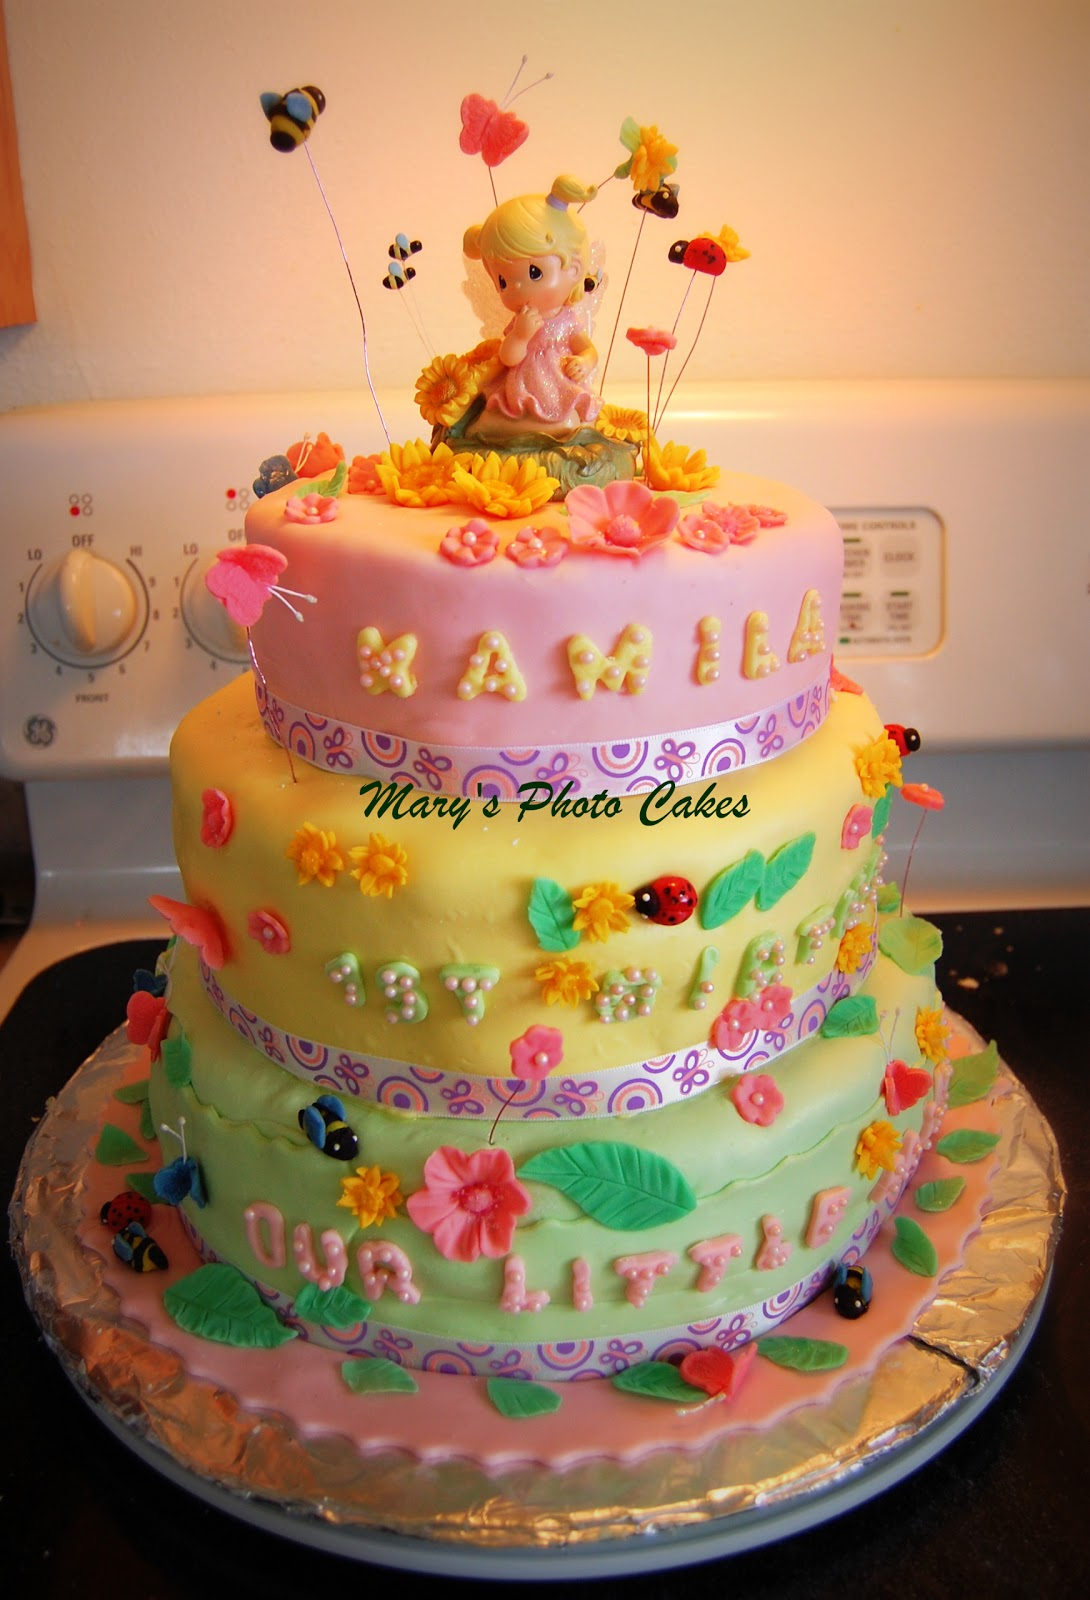 Mary s Photo Cakes: Precious Moments Cake for a 1 Year Old ...